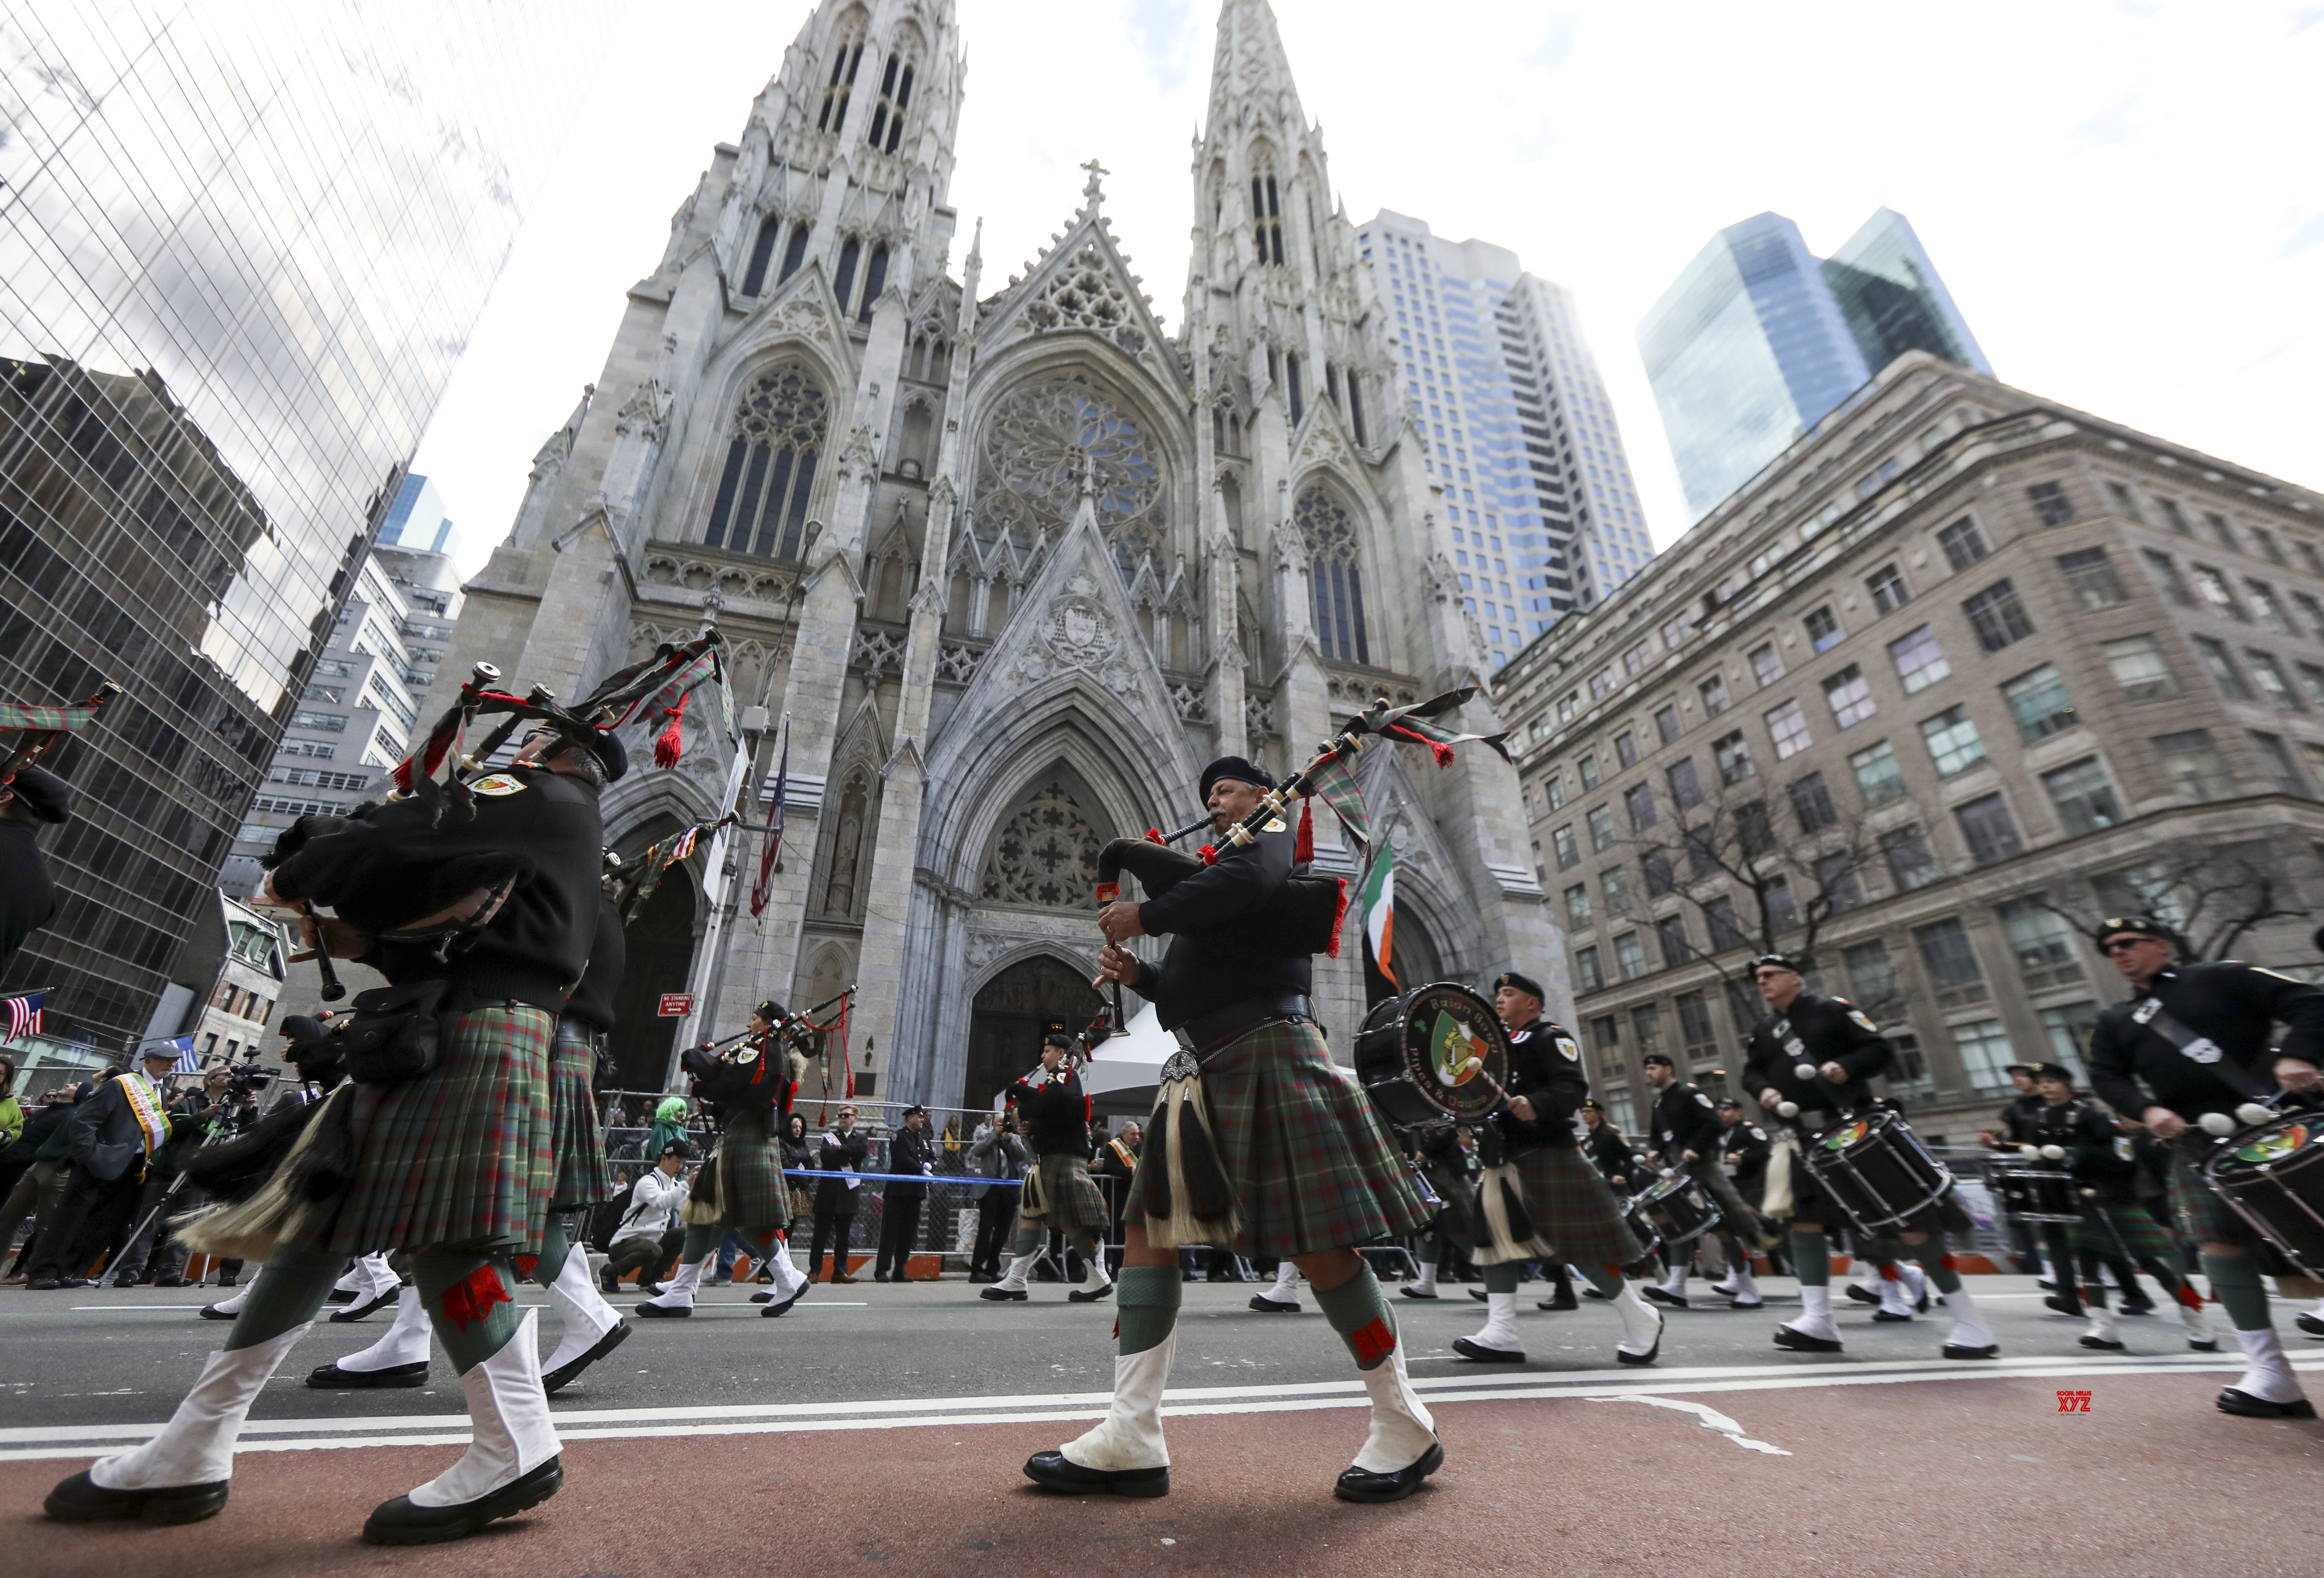 U.S. - NEW YORK - ST. PATRICK'S DAY - PARADE #Gallery